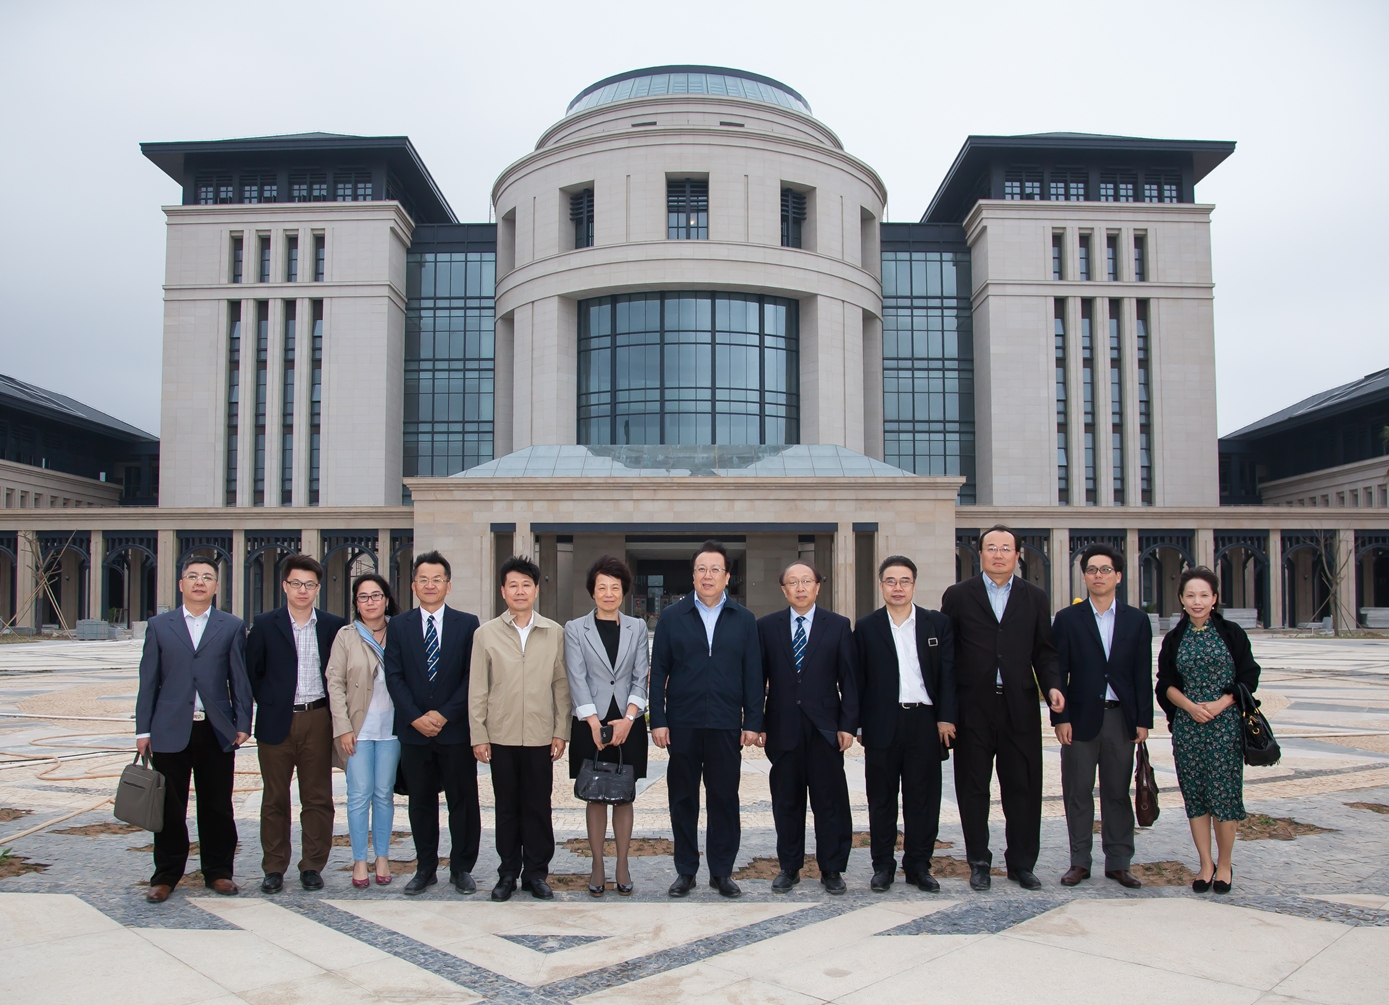 Vice Minister of Education Hao Ping and his colleagues visit the library on the new campus